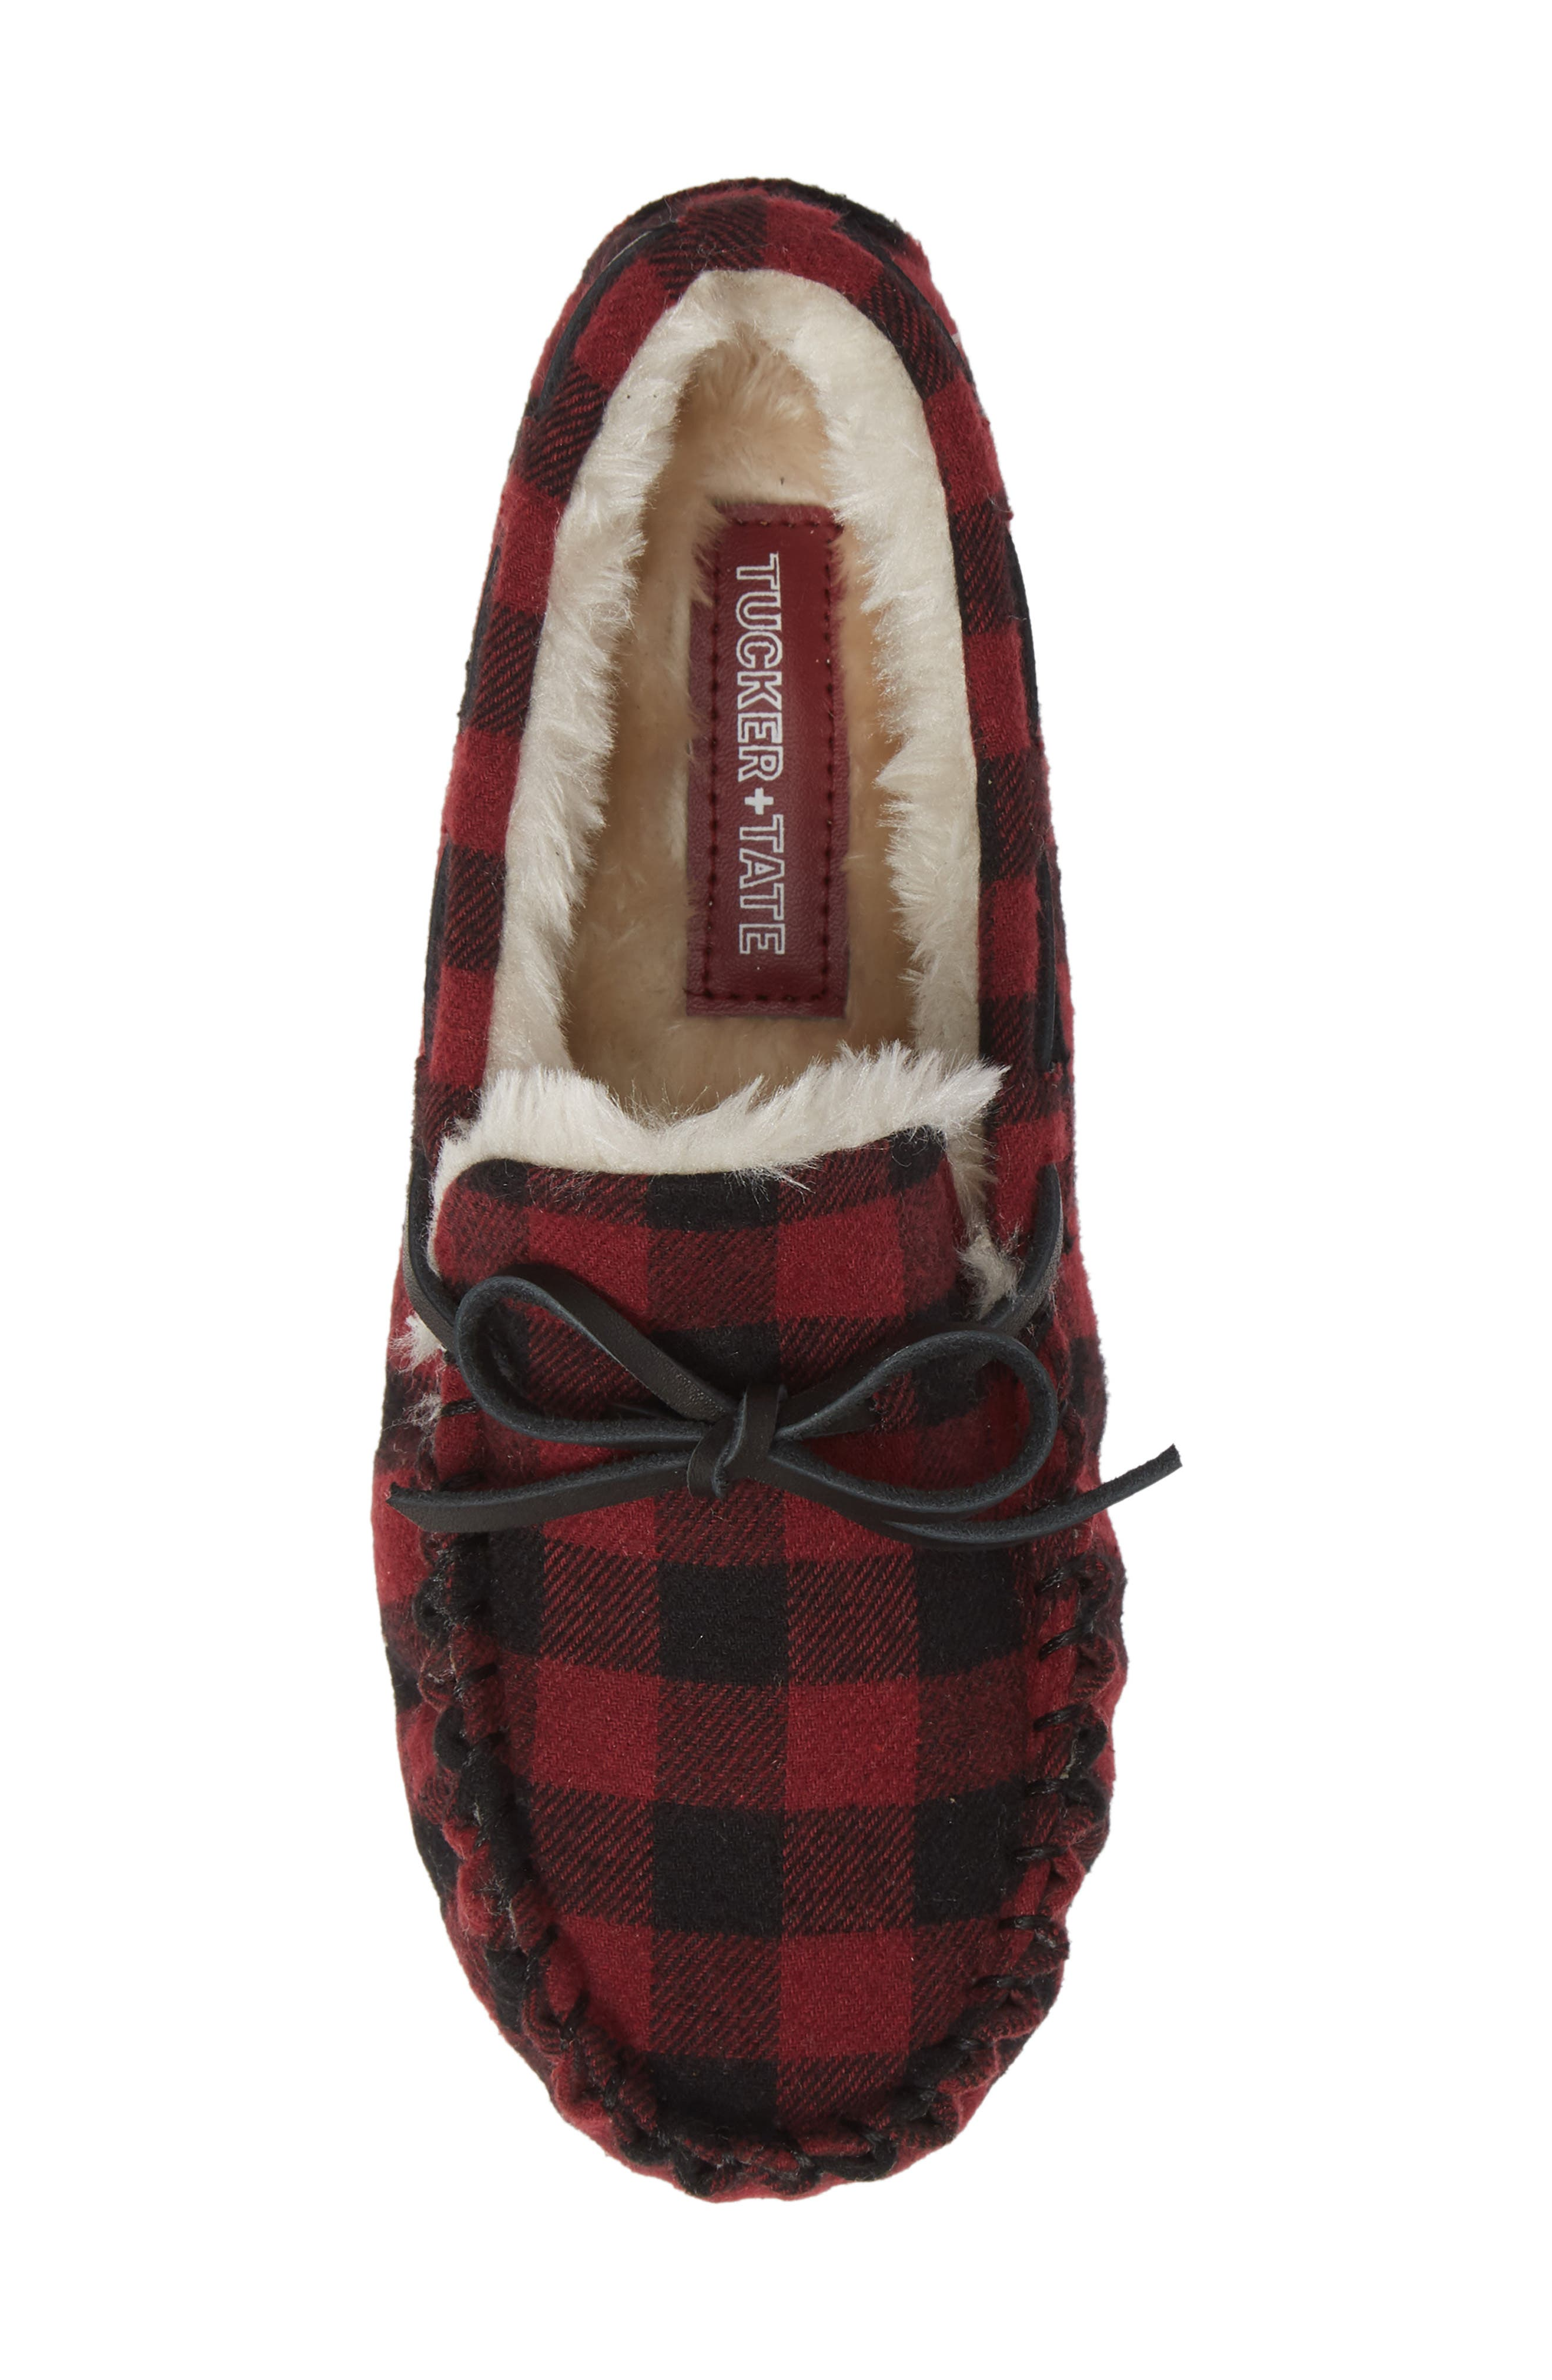 Max Faux Fur Moccasin Slipper,                             Alternate thumbnail 5, color,                             600